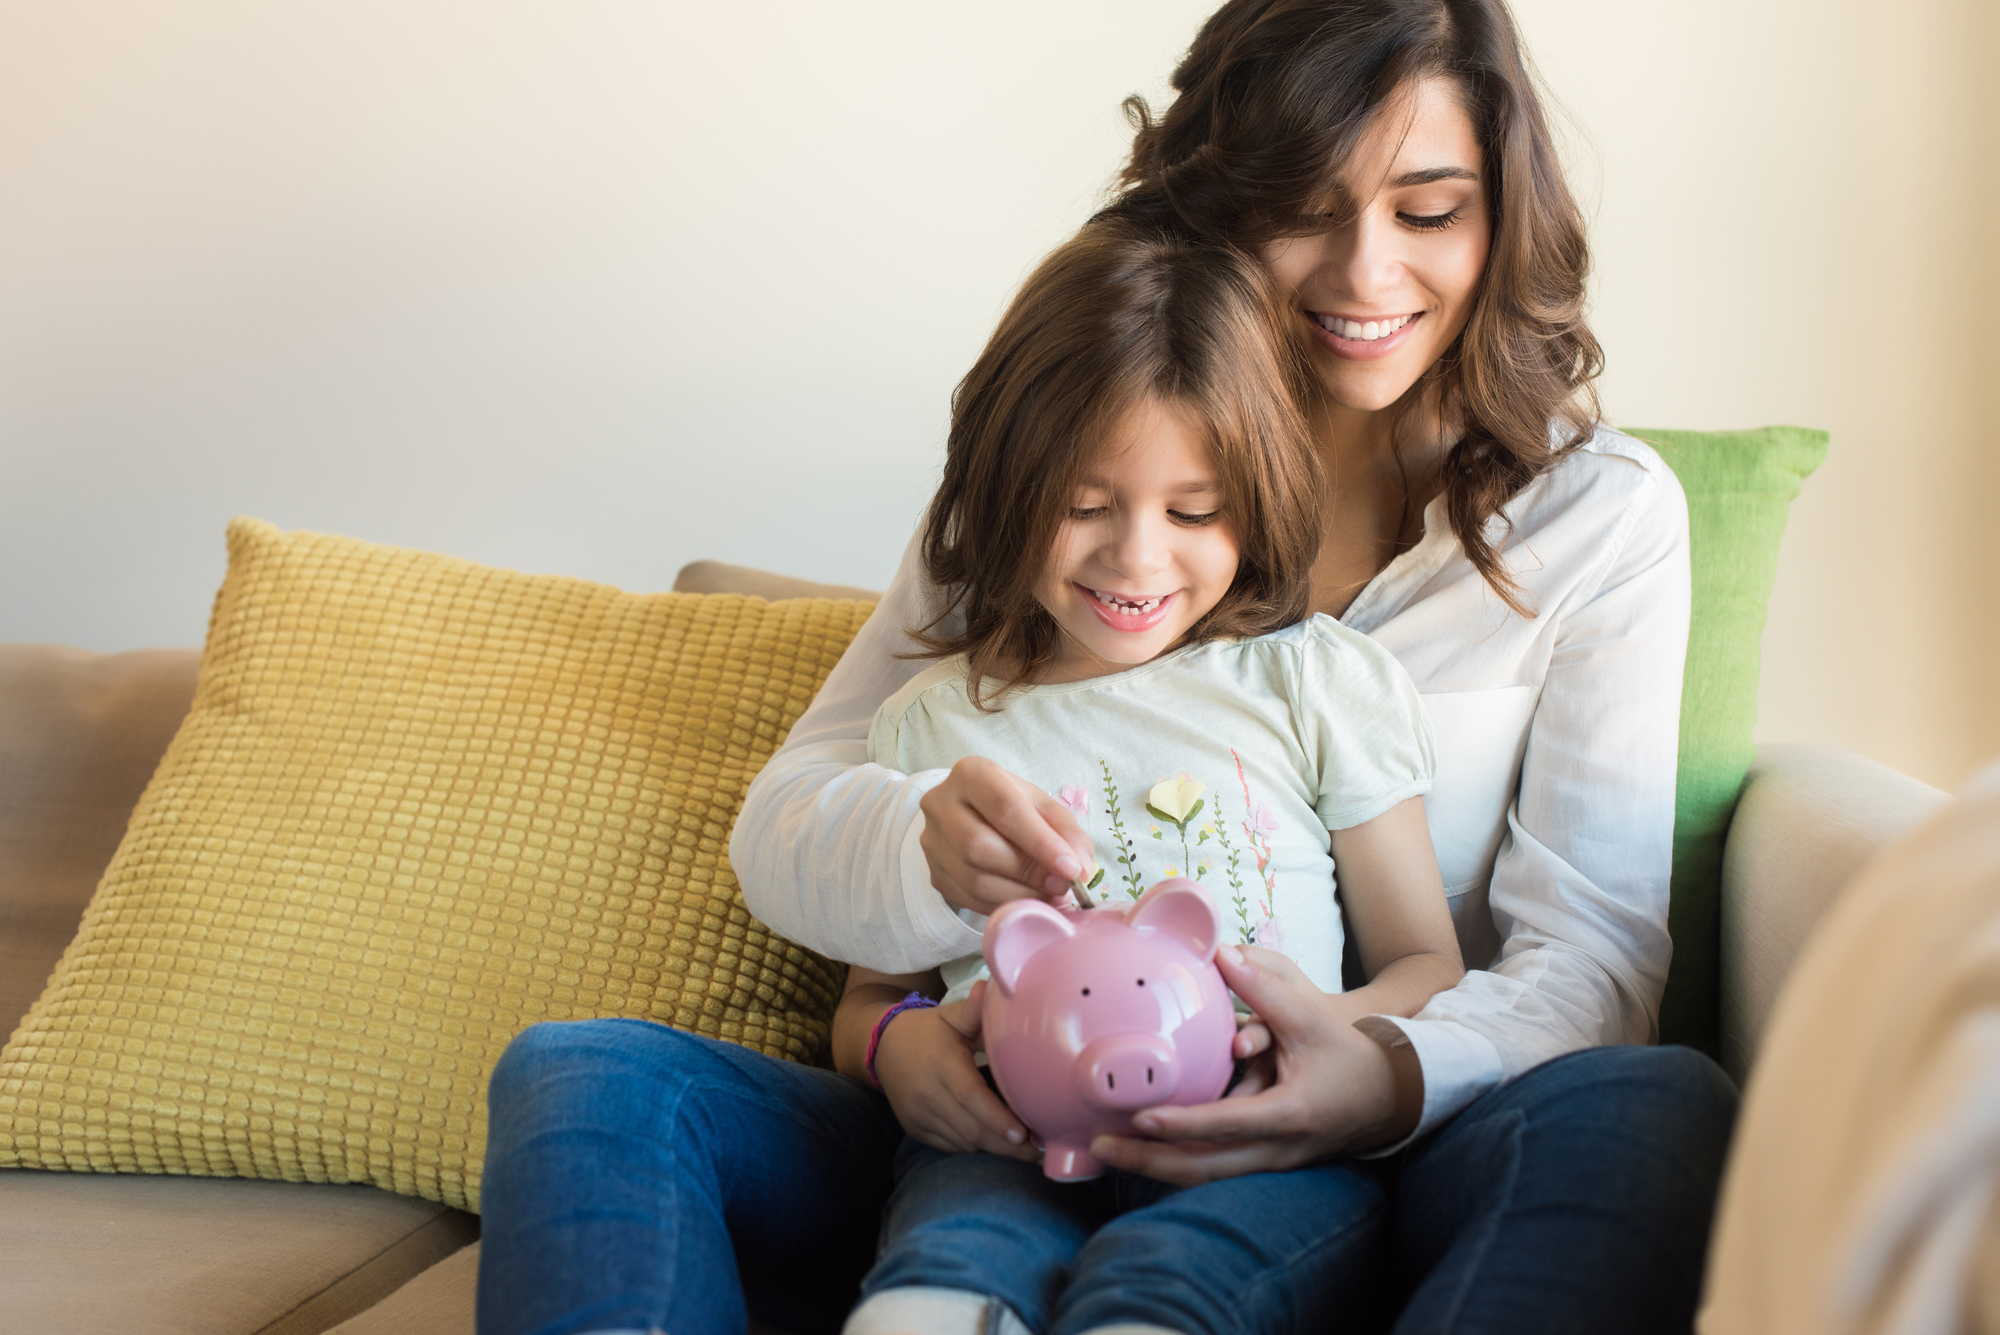 The Benefits Of Flexible Working For Stay At Home Parents